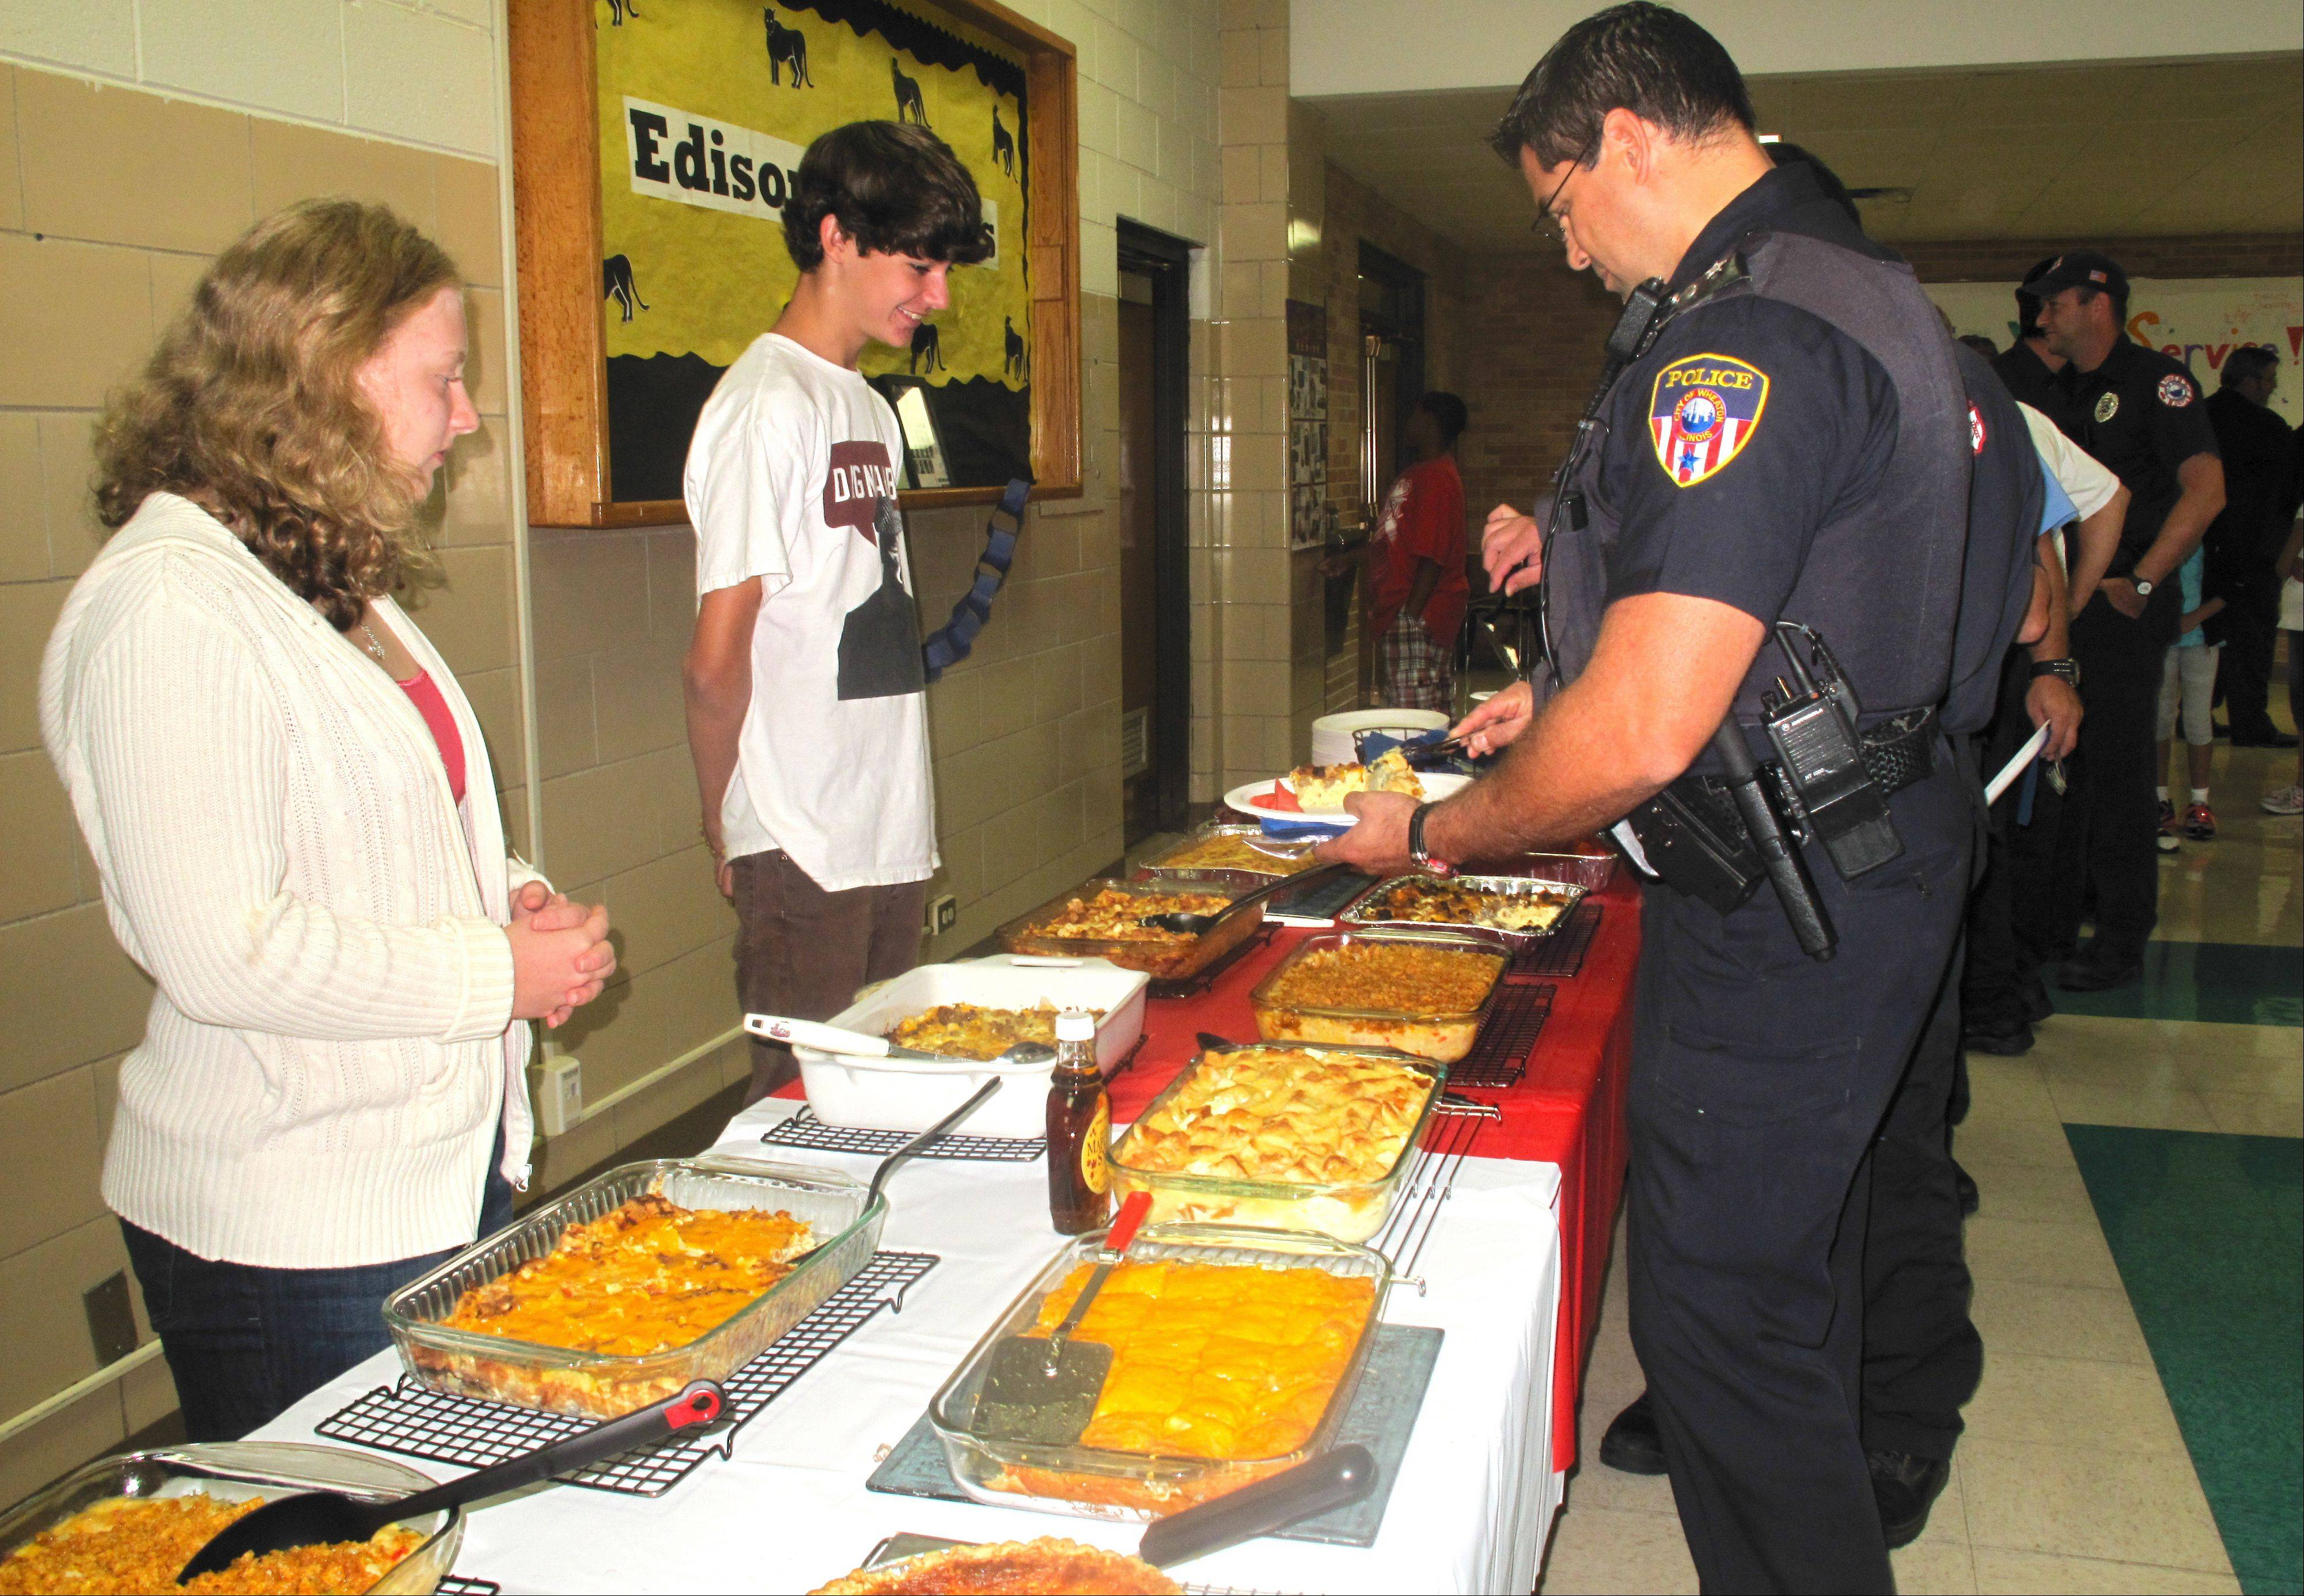 Edison Middle School students served breakfast Friday for Wheaton police and fire officials to observe the 10th anniversary of the Sept. 11 terrorist attacks.